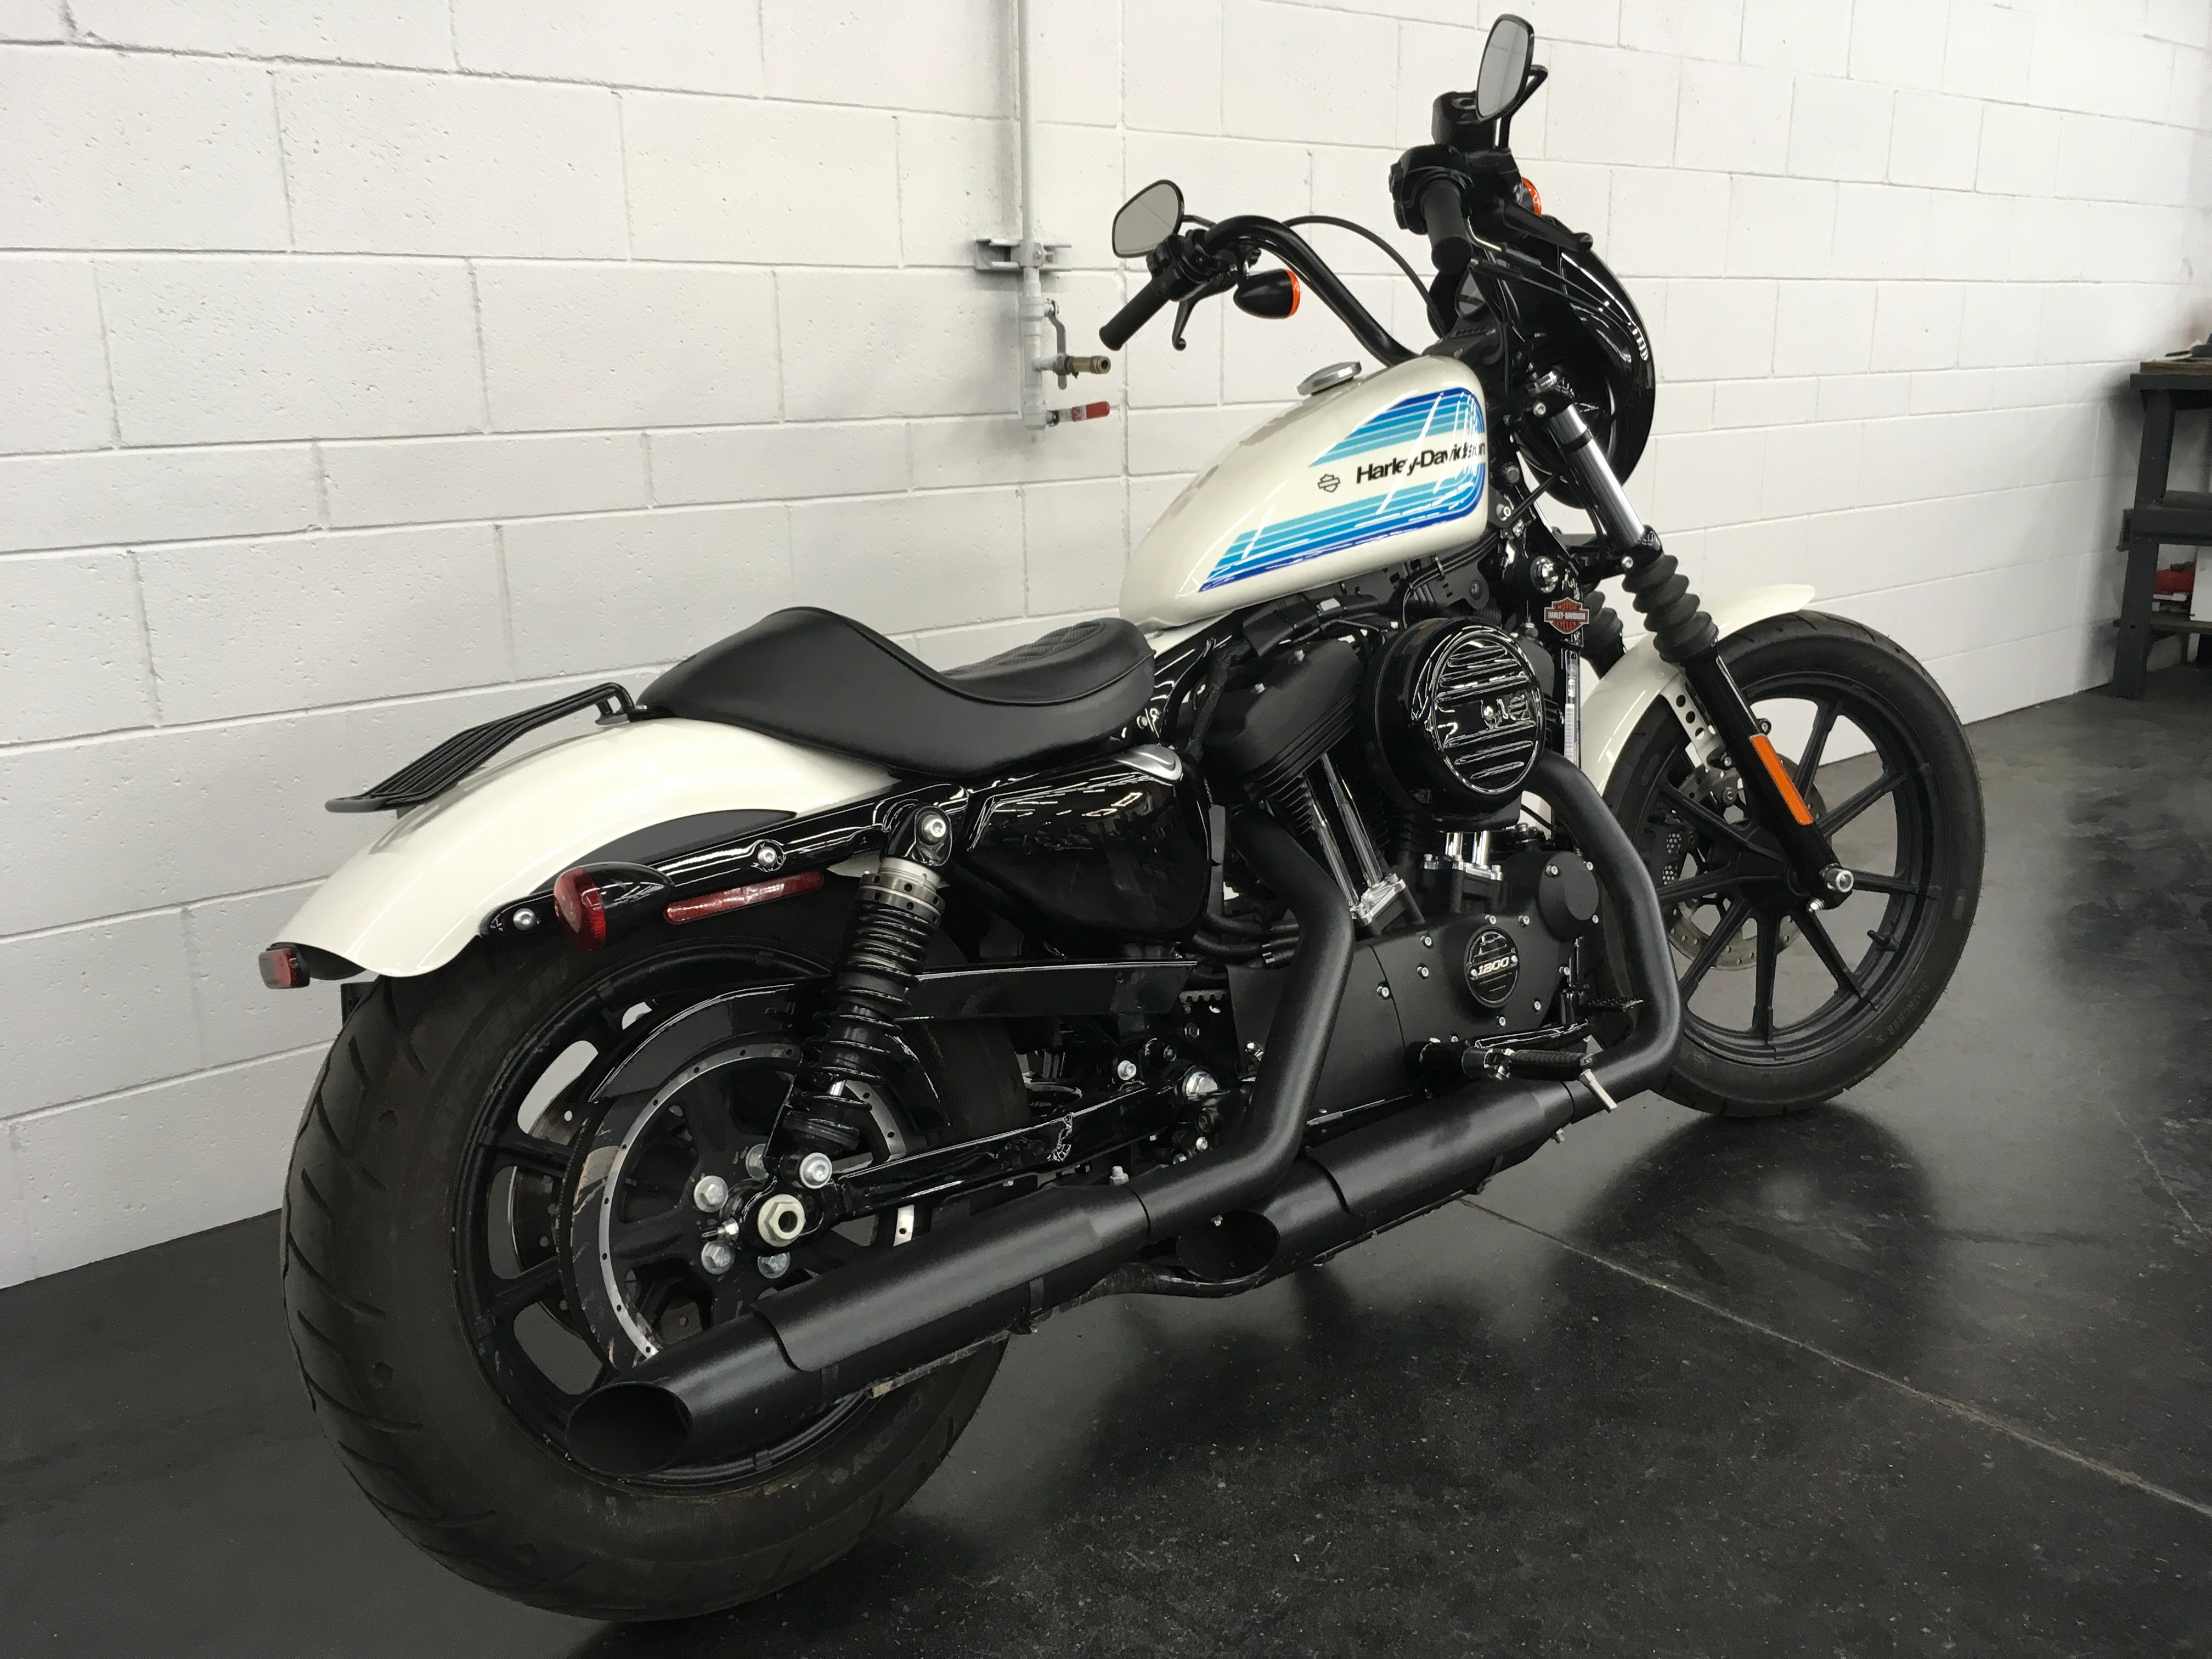 Pre-Owned 2019 Harley-Davidson Iron 1200